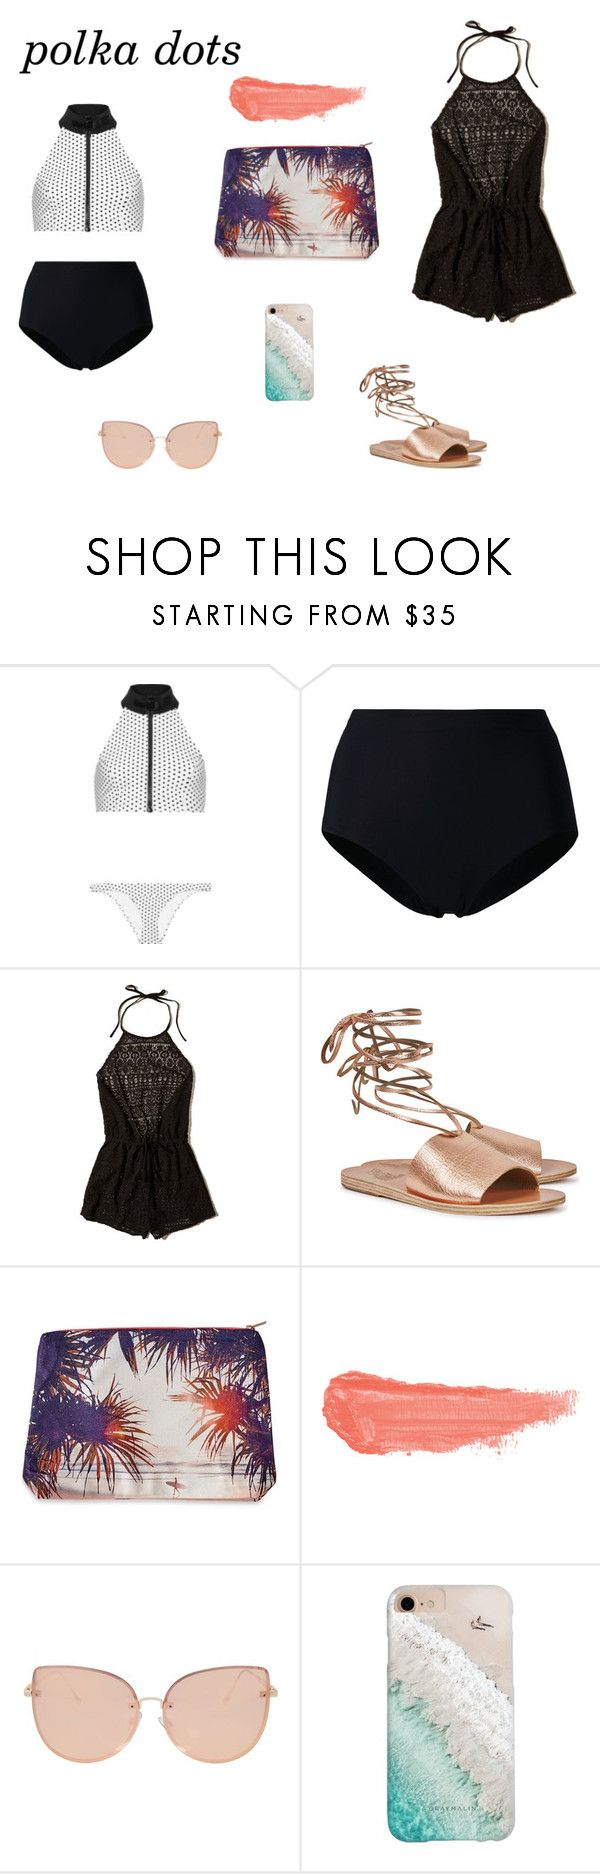 """Swim Day"" by superwoman1520 ❤ liked on Polyvore featuring Lisa Marie Fernandez, Ermanno Scervino, Hollister Co., Ancient Greek Sandals, Samudra, By Terry, Topshop and Gray Malin"